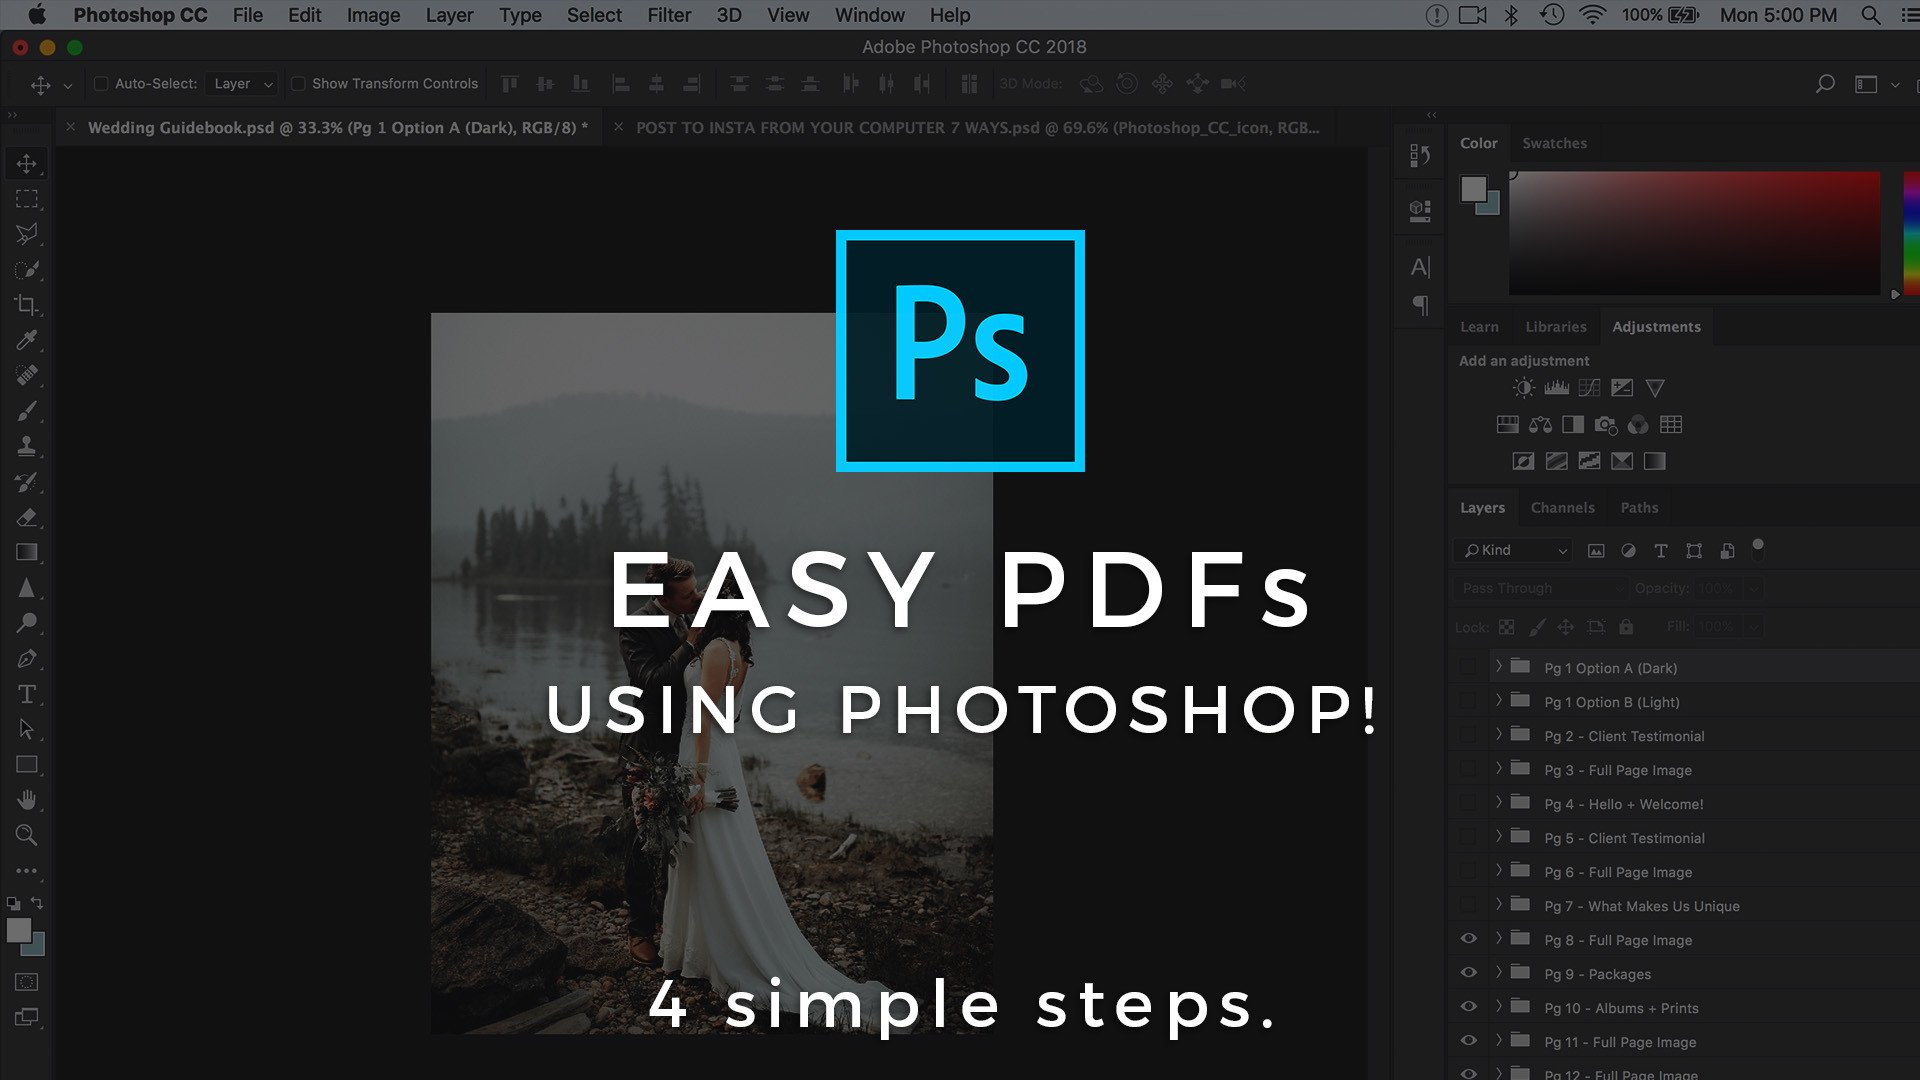 How To Create Multi Page PDFs in Photoshop CC & Export Multiple Pages